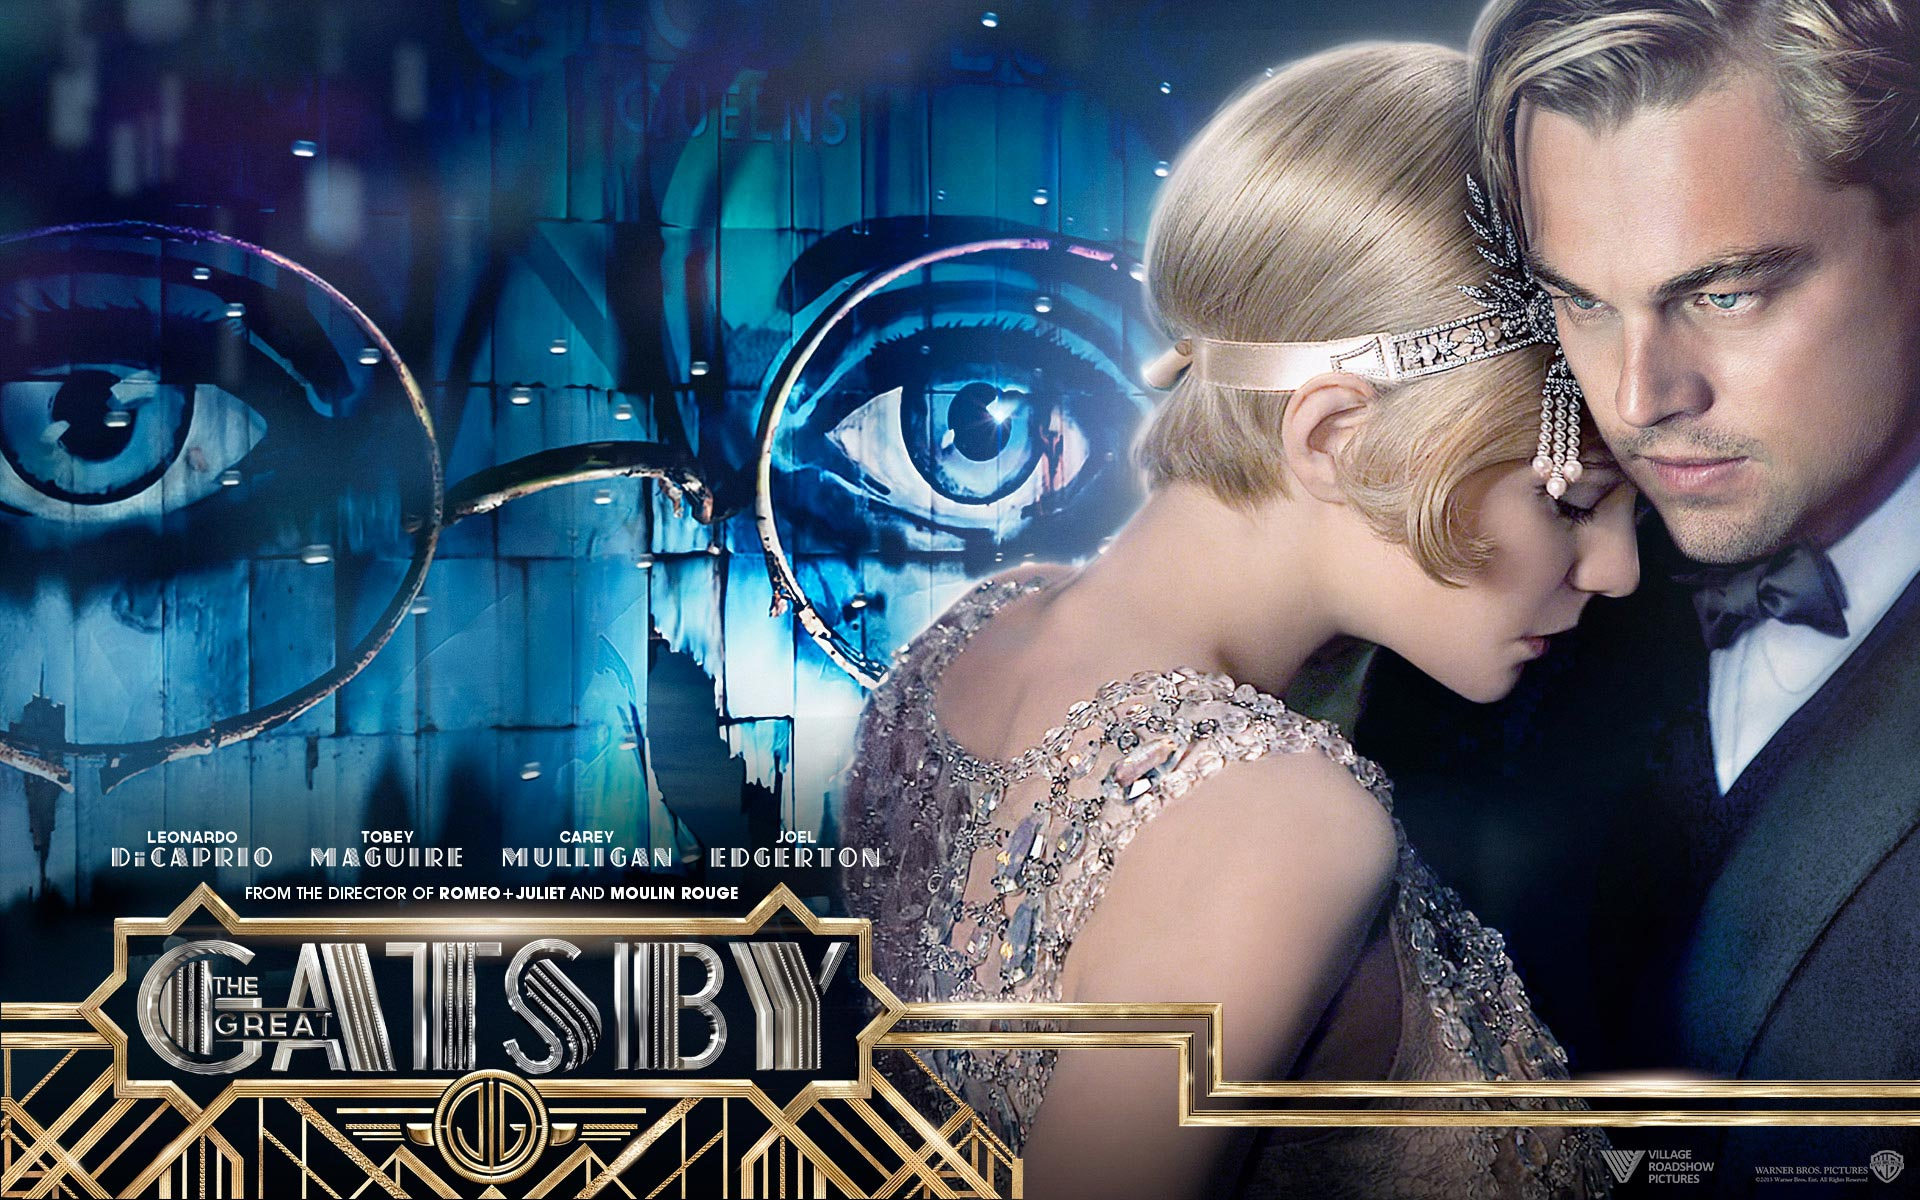 Great-Gatsby-wallpaper_03.jpg